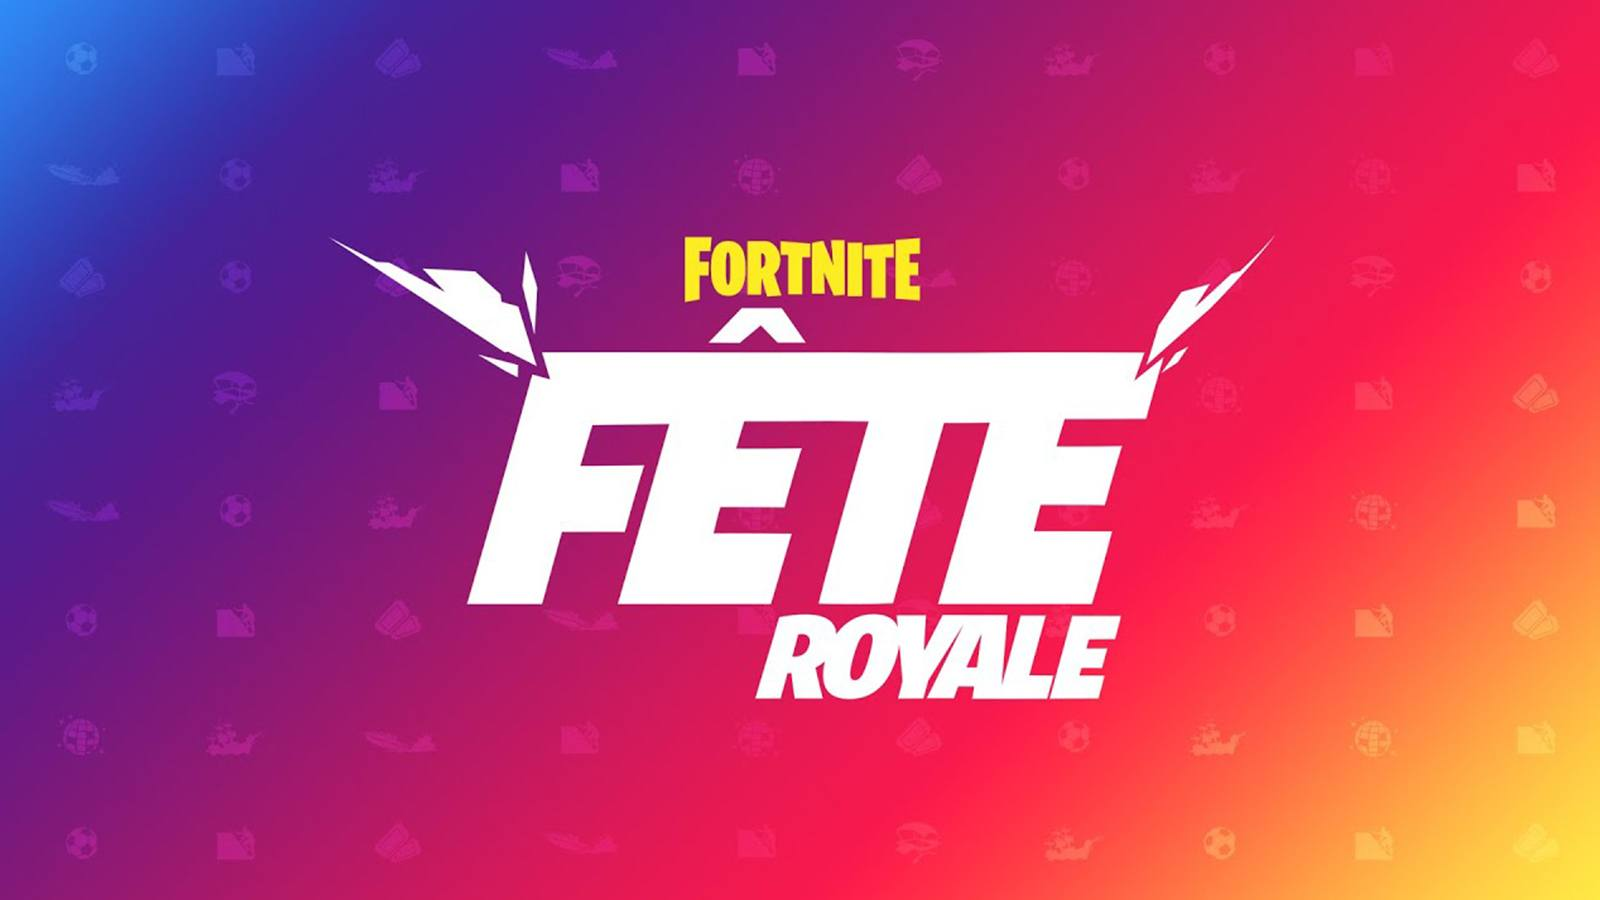 Fortnite Fête Royale